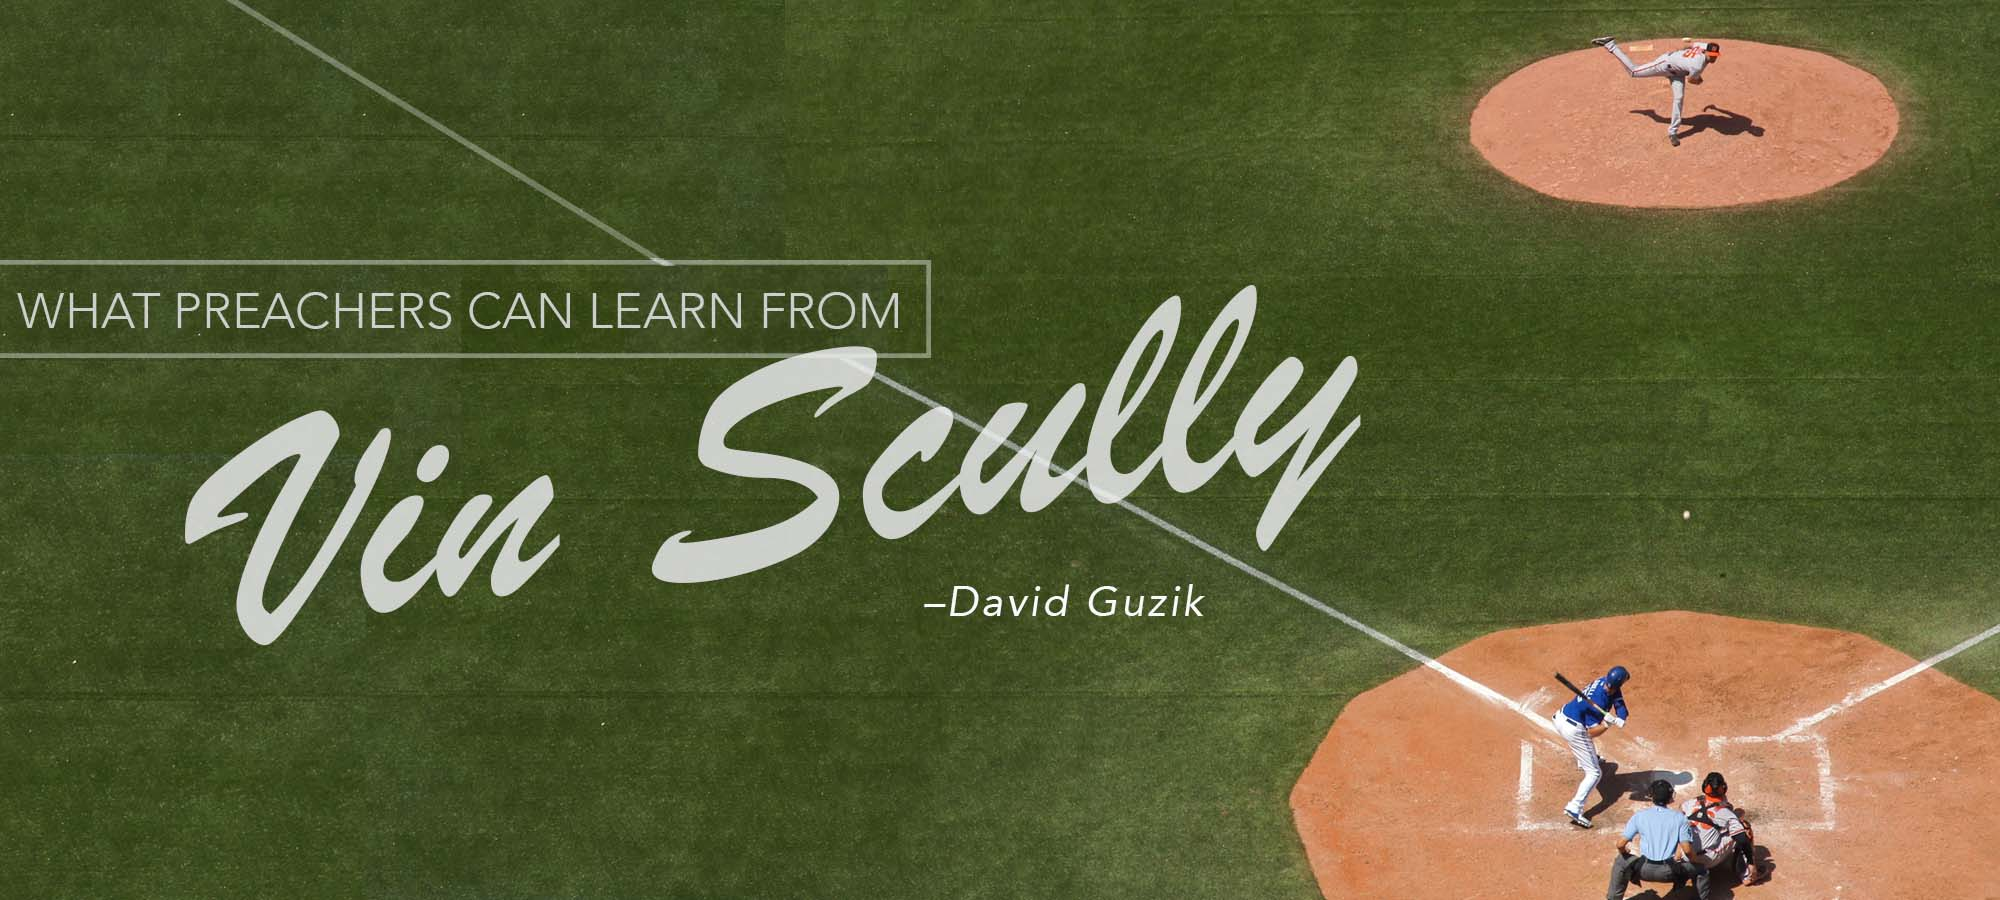 What Preachers Can Learn from Vin Scully